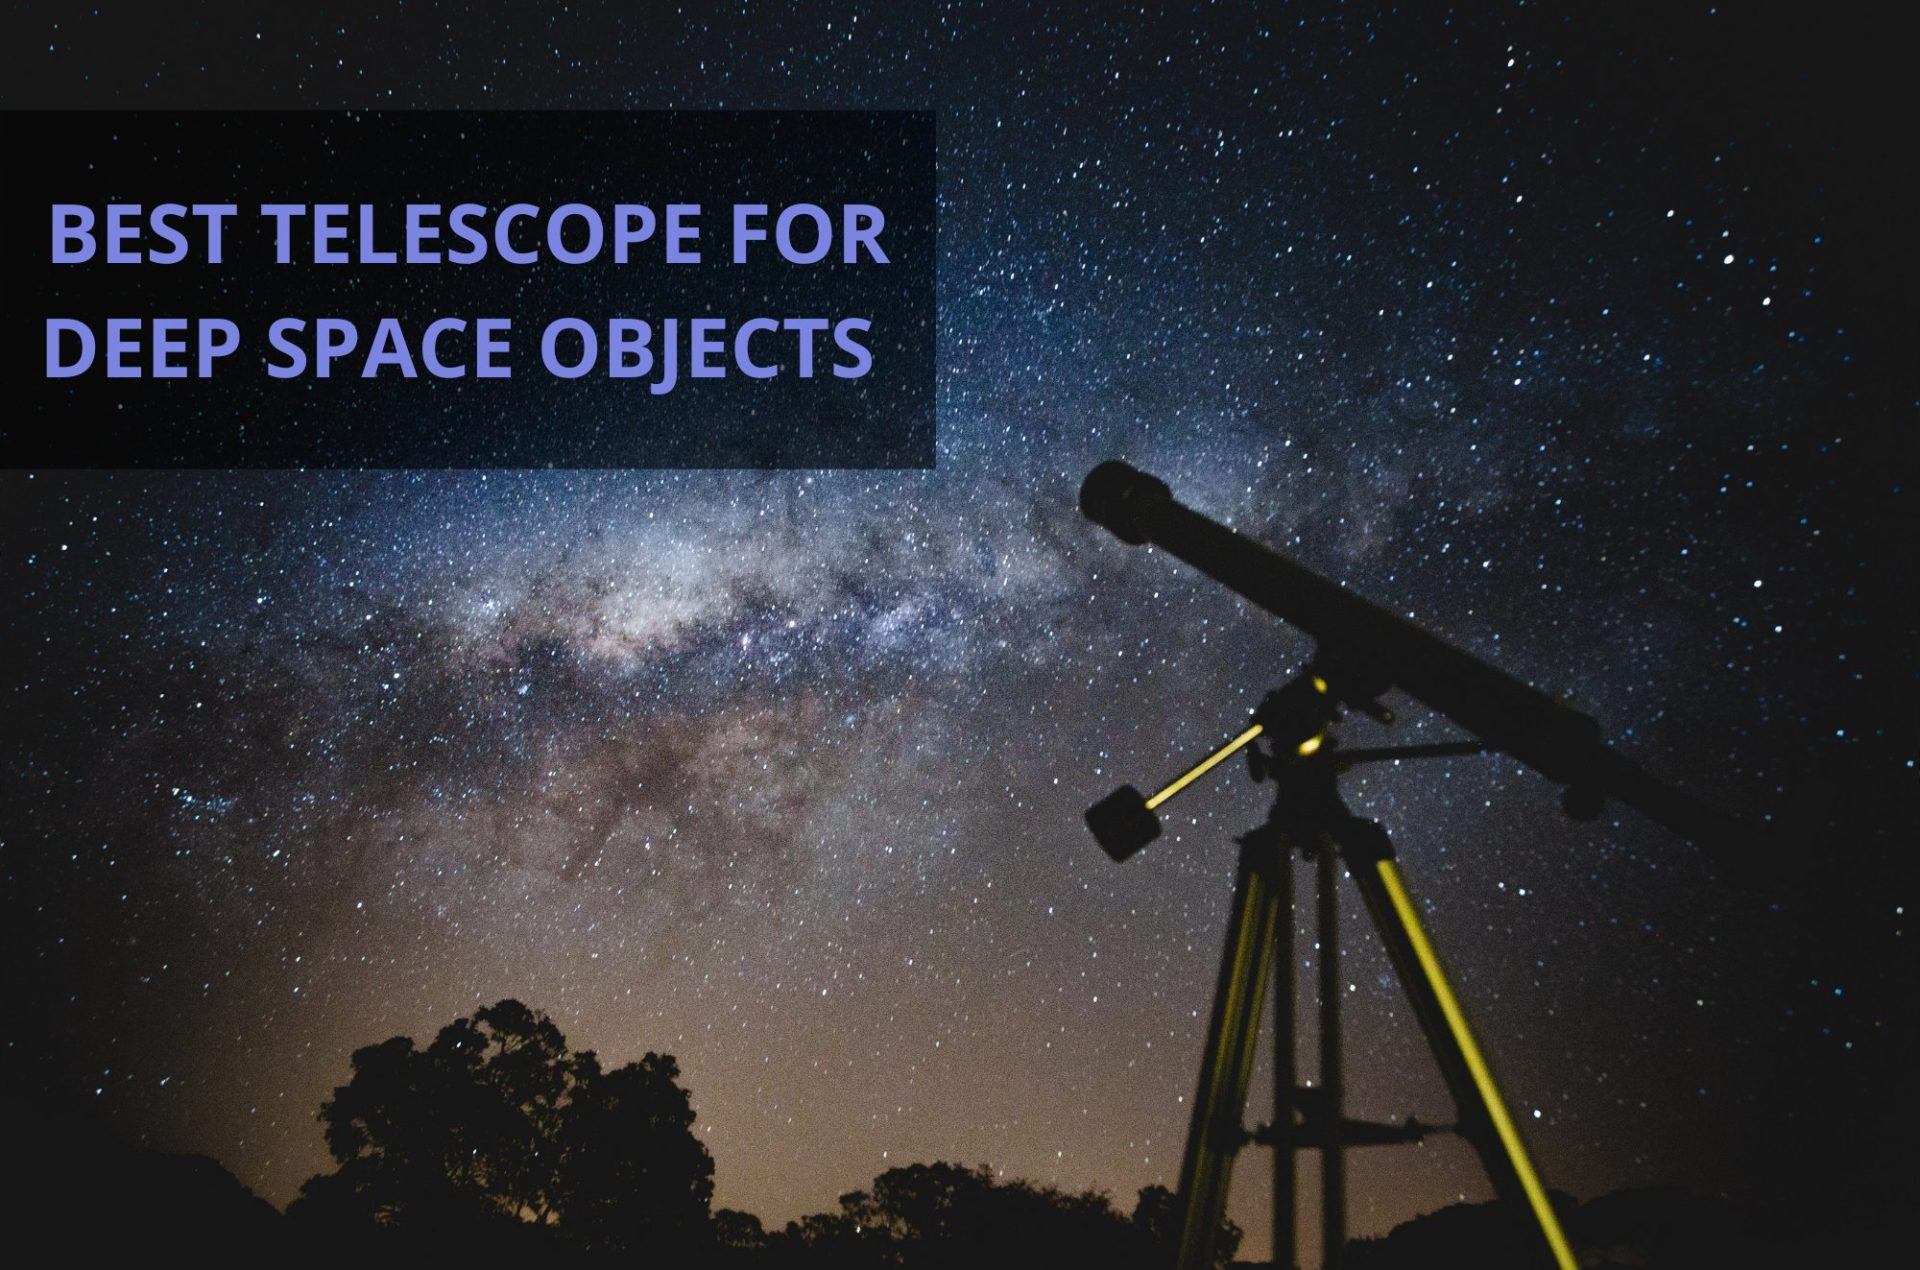 Best Telescope For Deep Space Objects